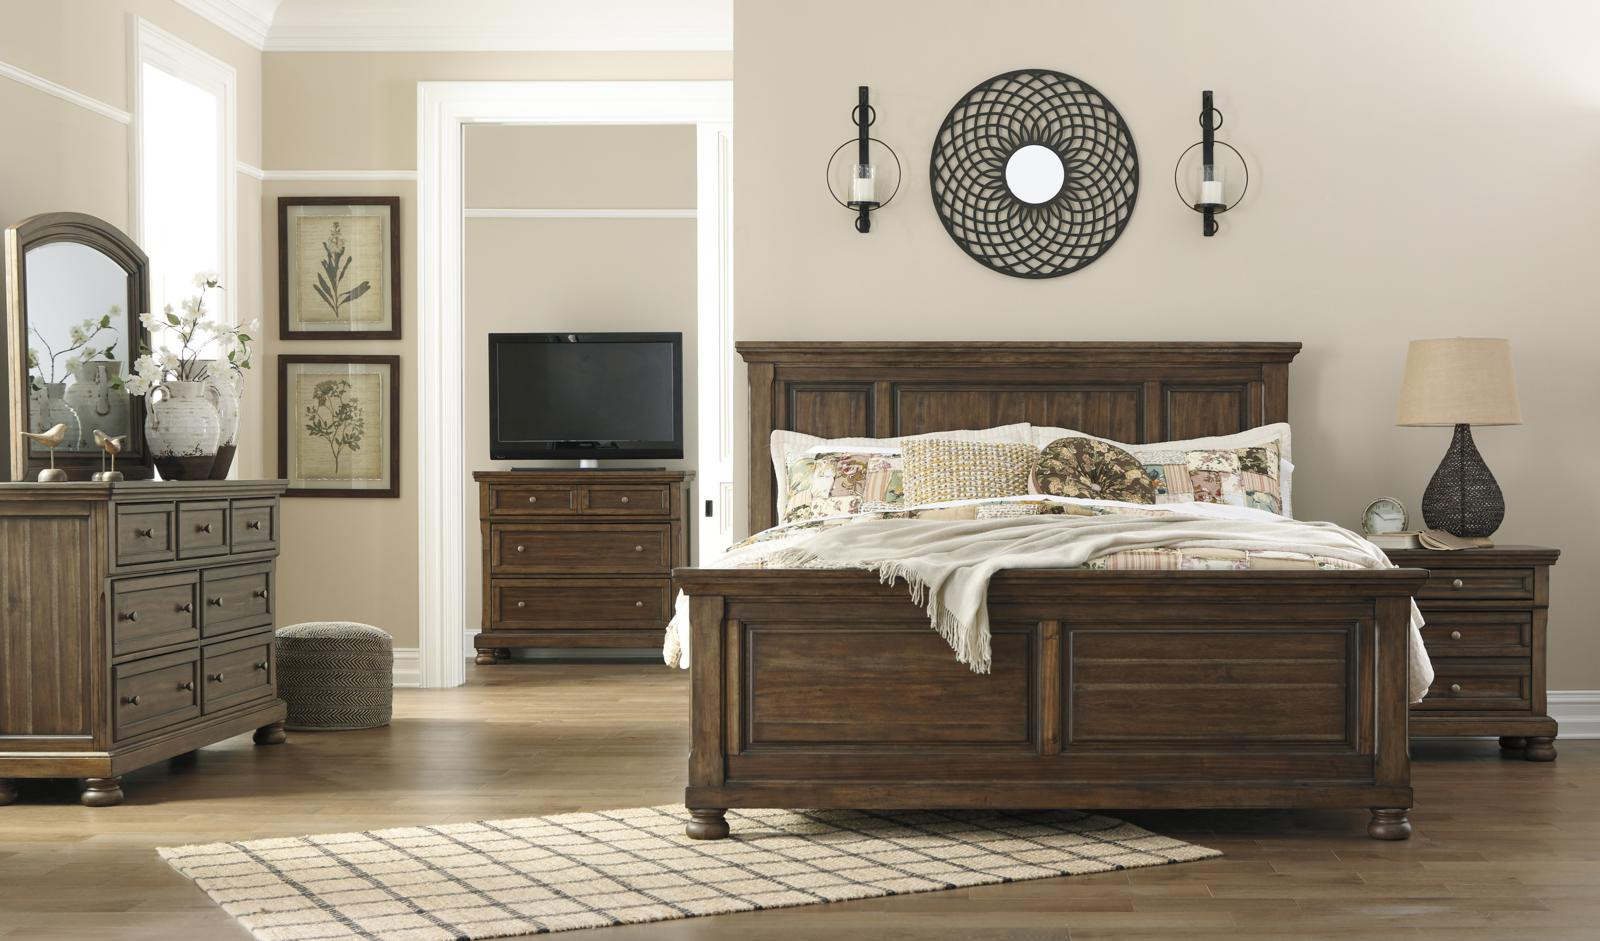 Best ideas about Bedroom Furniture Discounts . Save or Pin Flynnter 4pc Panel Bedroom Set in Medium Brown Now.